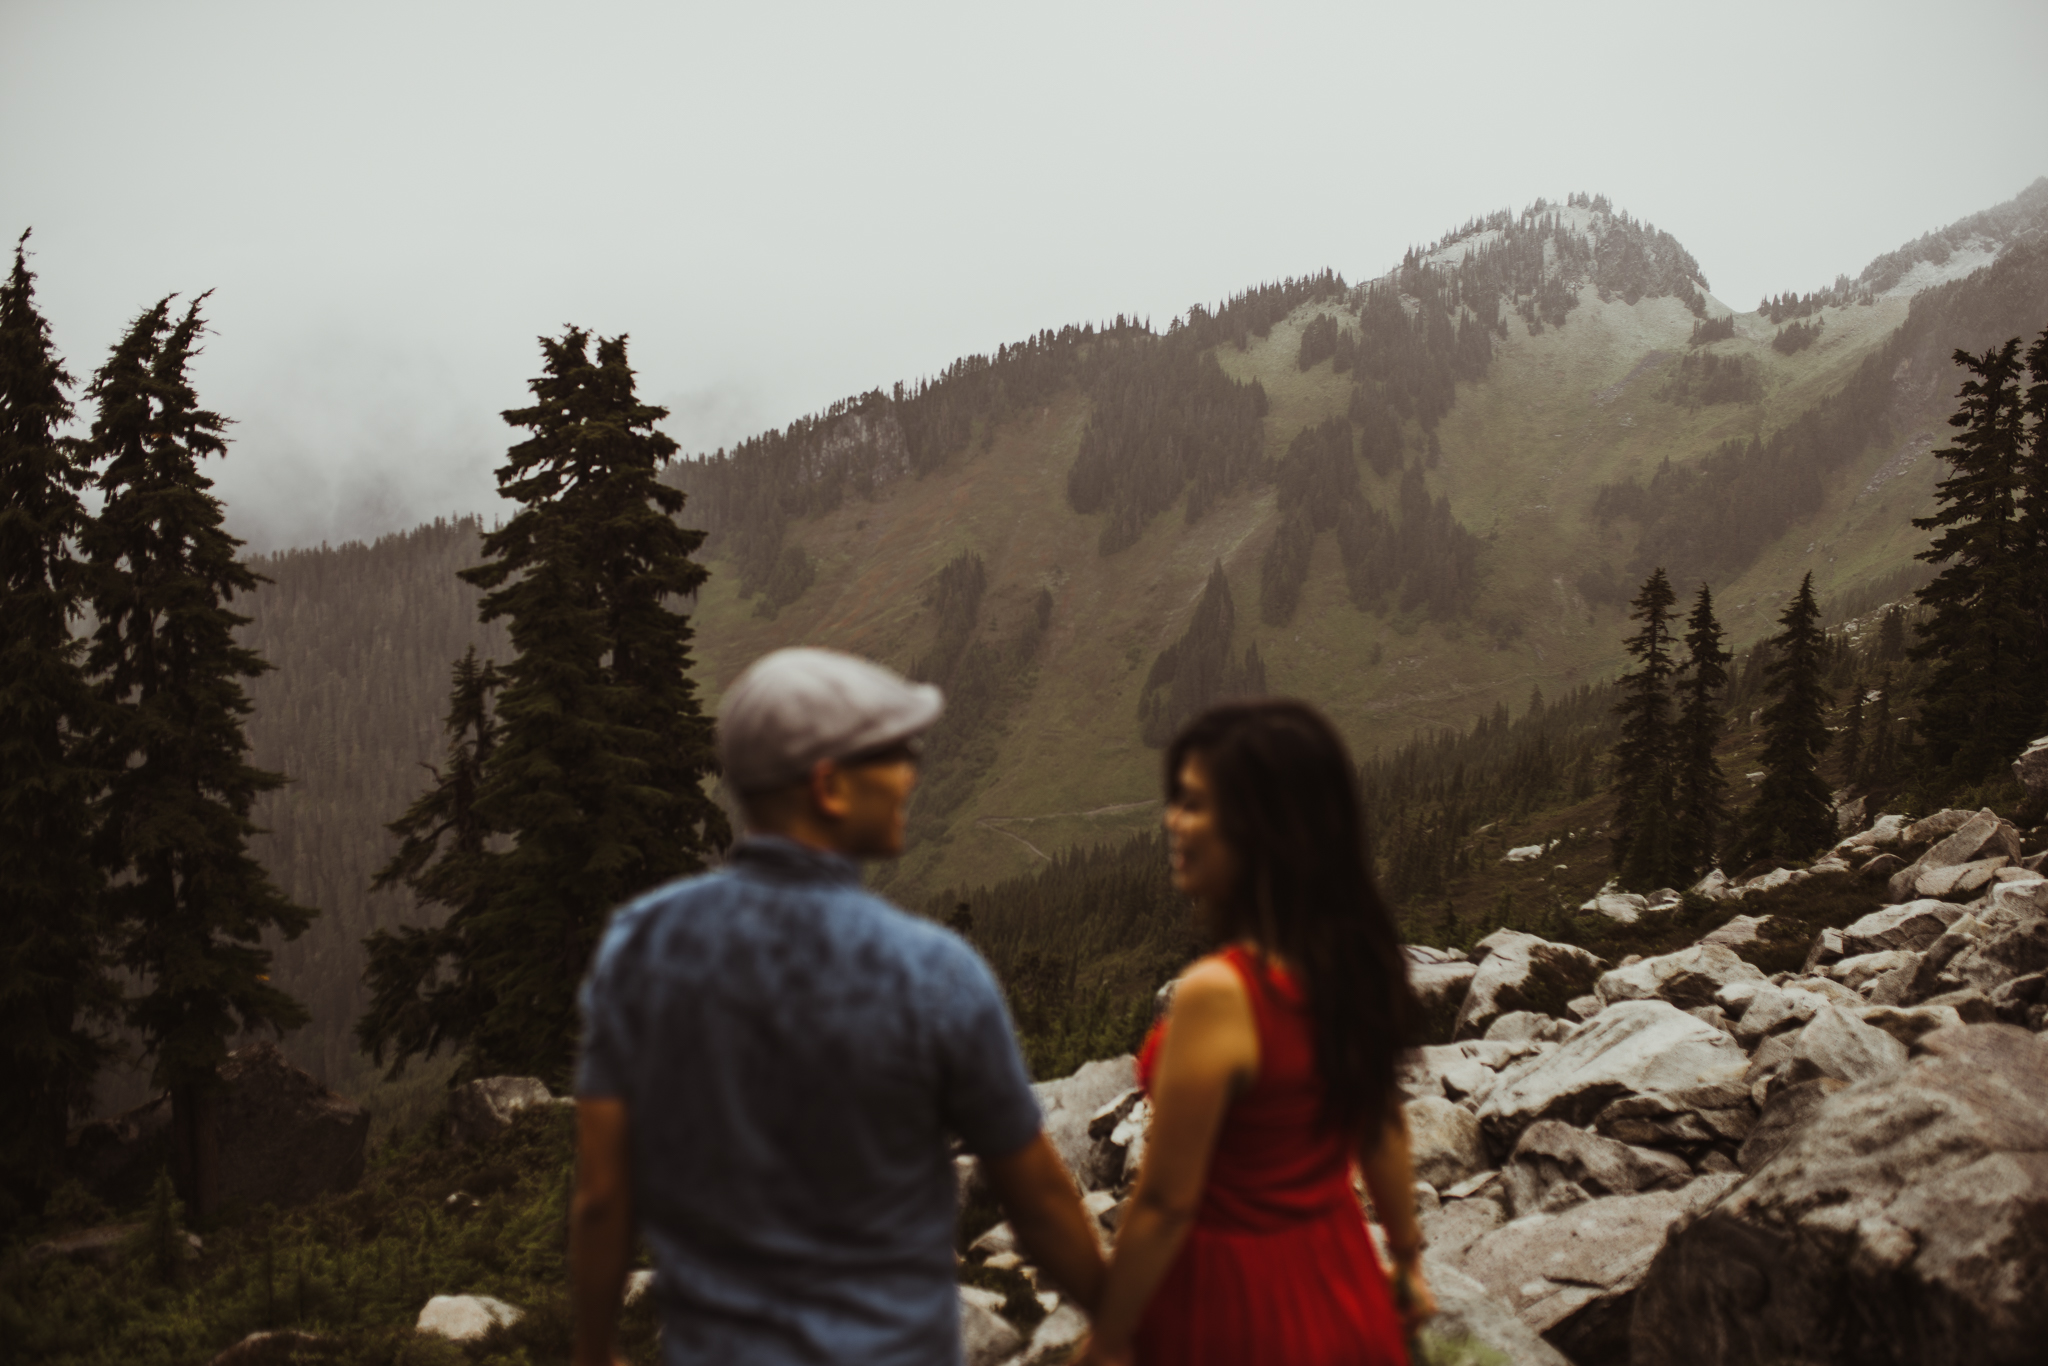 ©Isaiah-&-Taylor-Photography---Hidden-Lake-Cascade-Mountains-Engagement,-Washington-066.jpg